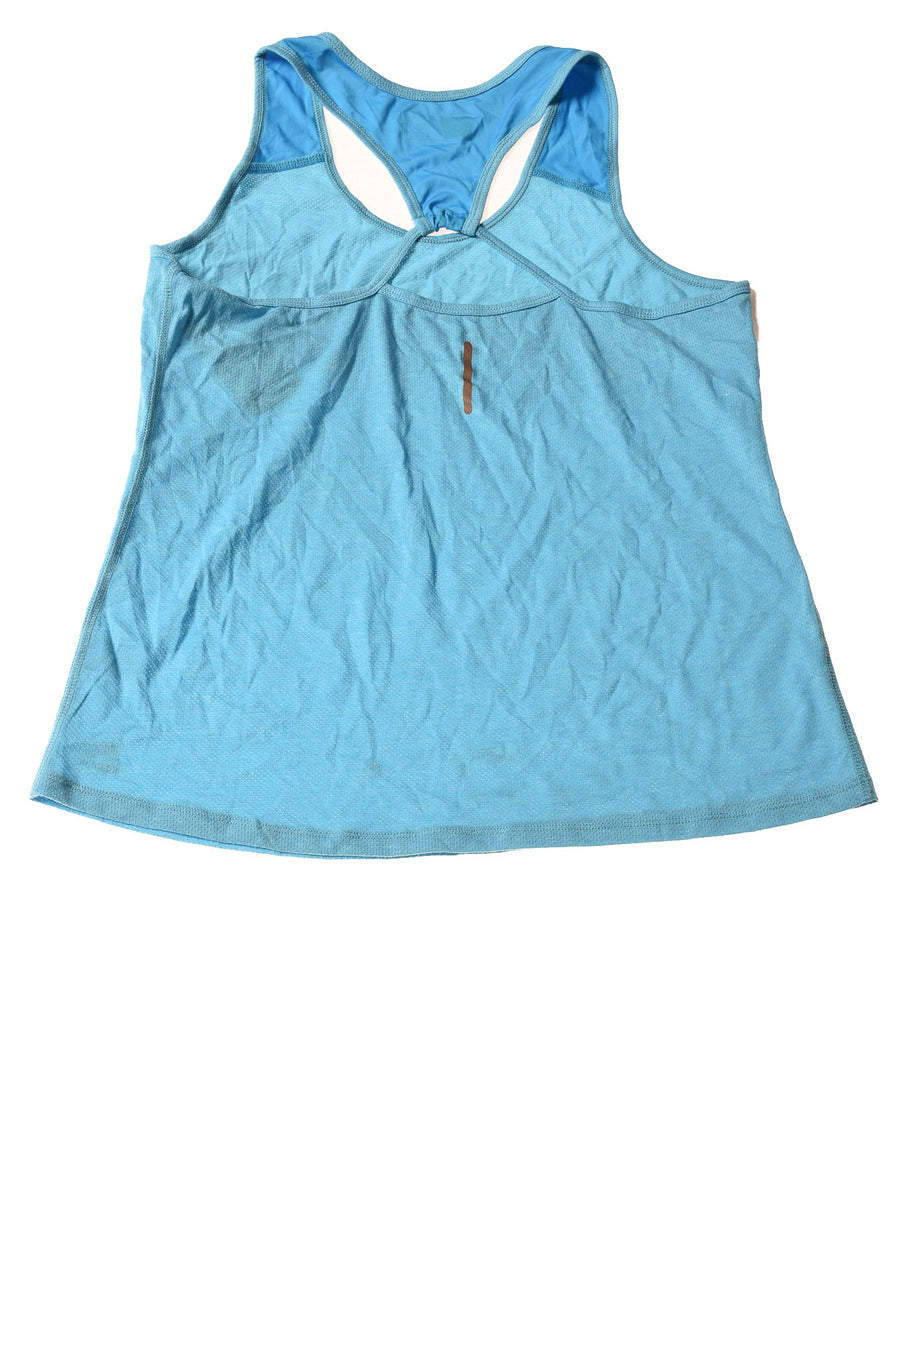 NEW RBX Women's Top Large Blue